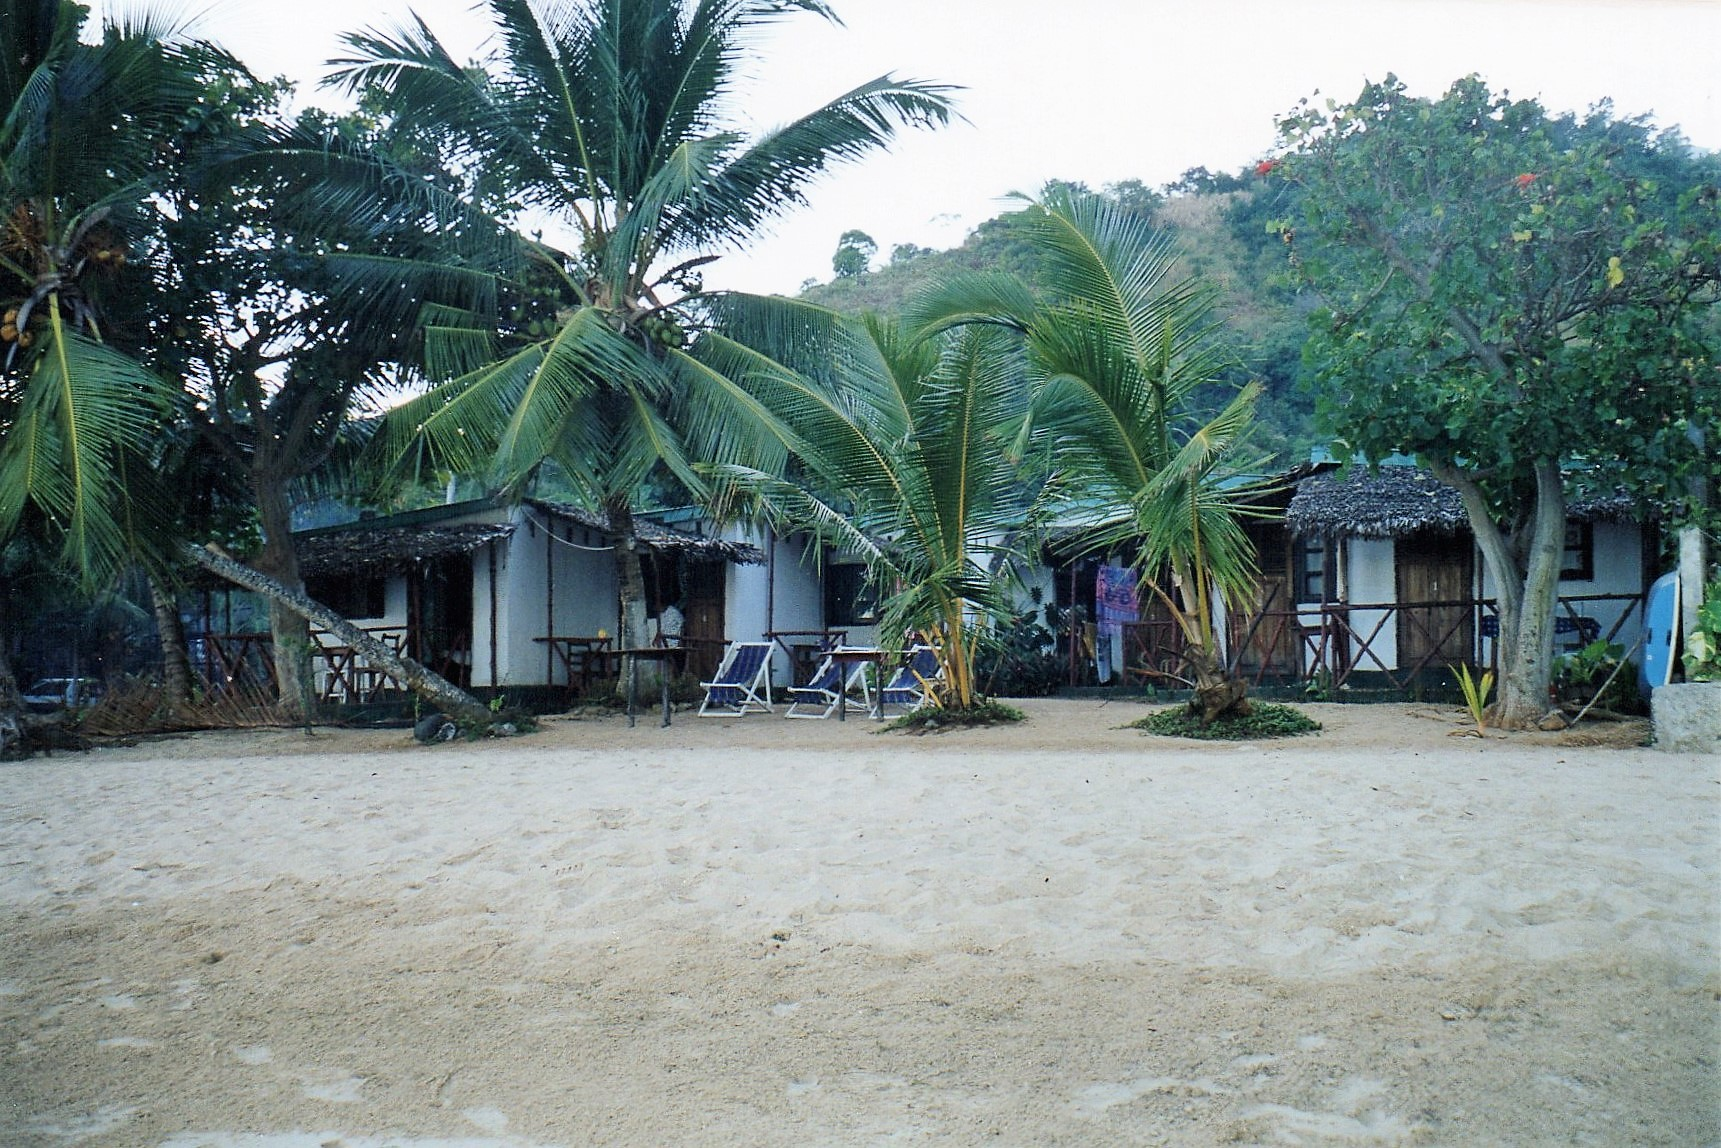 Our accommodation looks luxuriously tropical